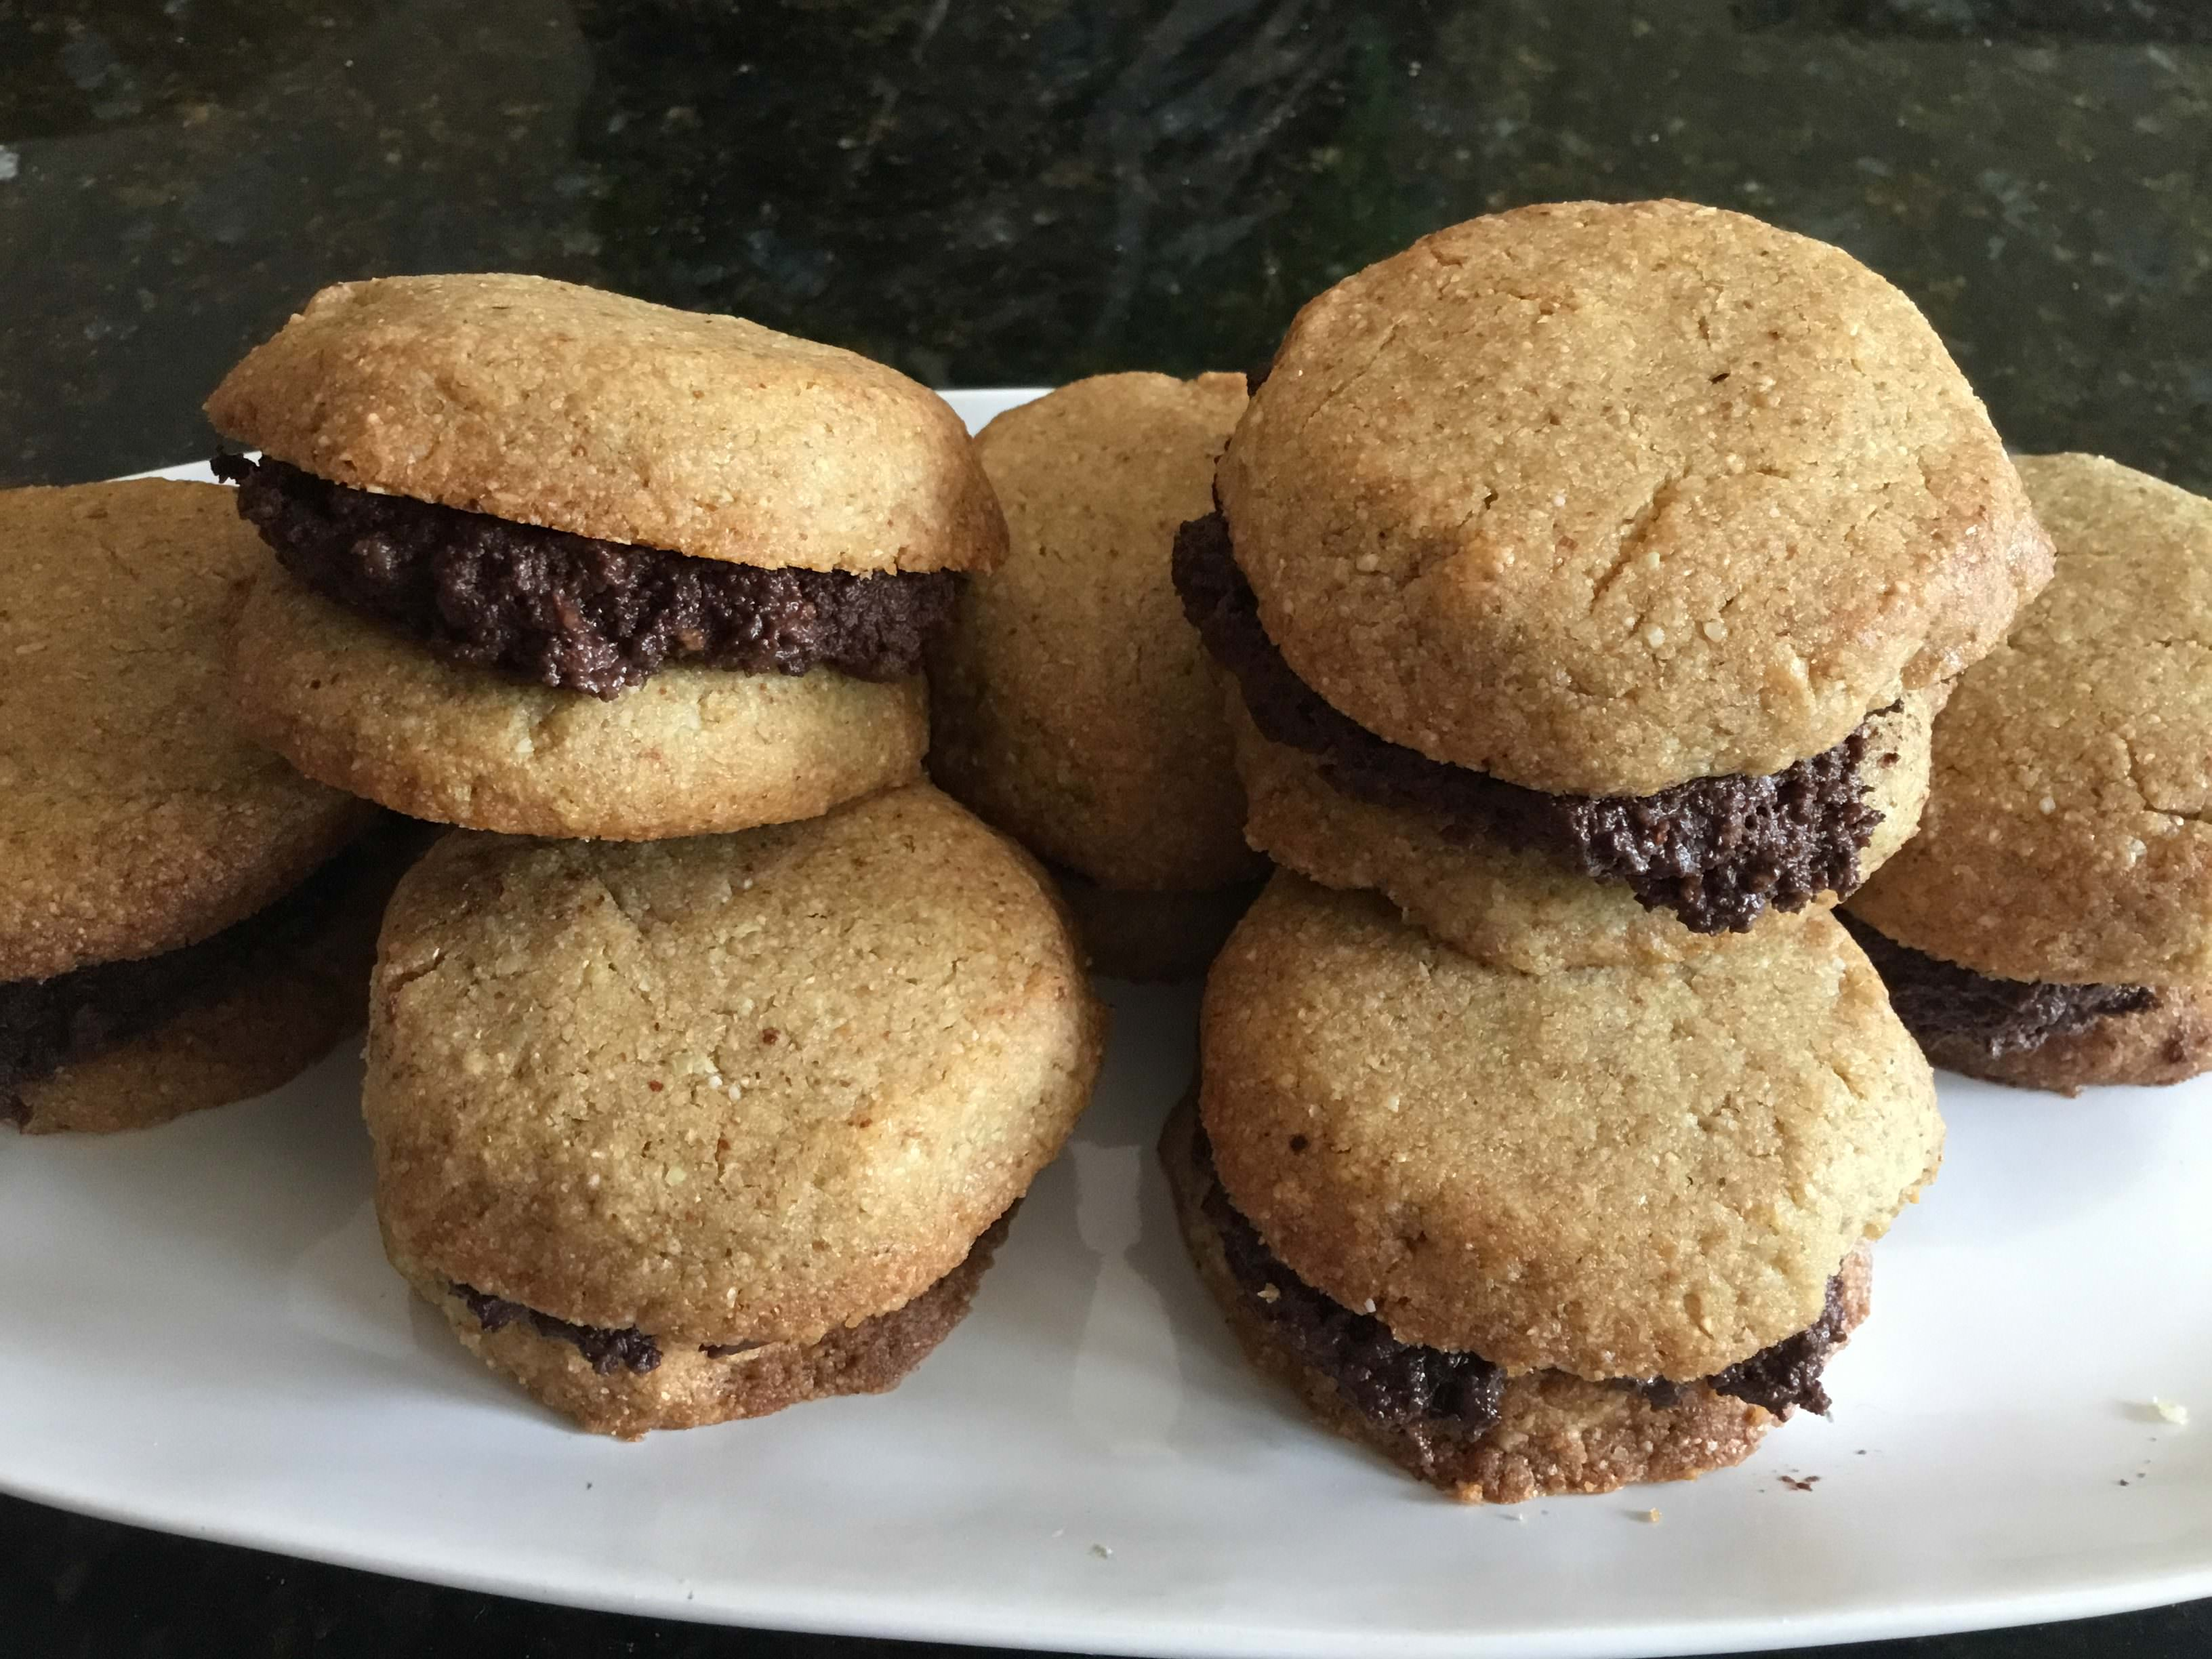 Chocolate & Hazelnut cookies